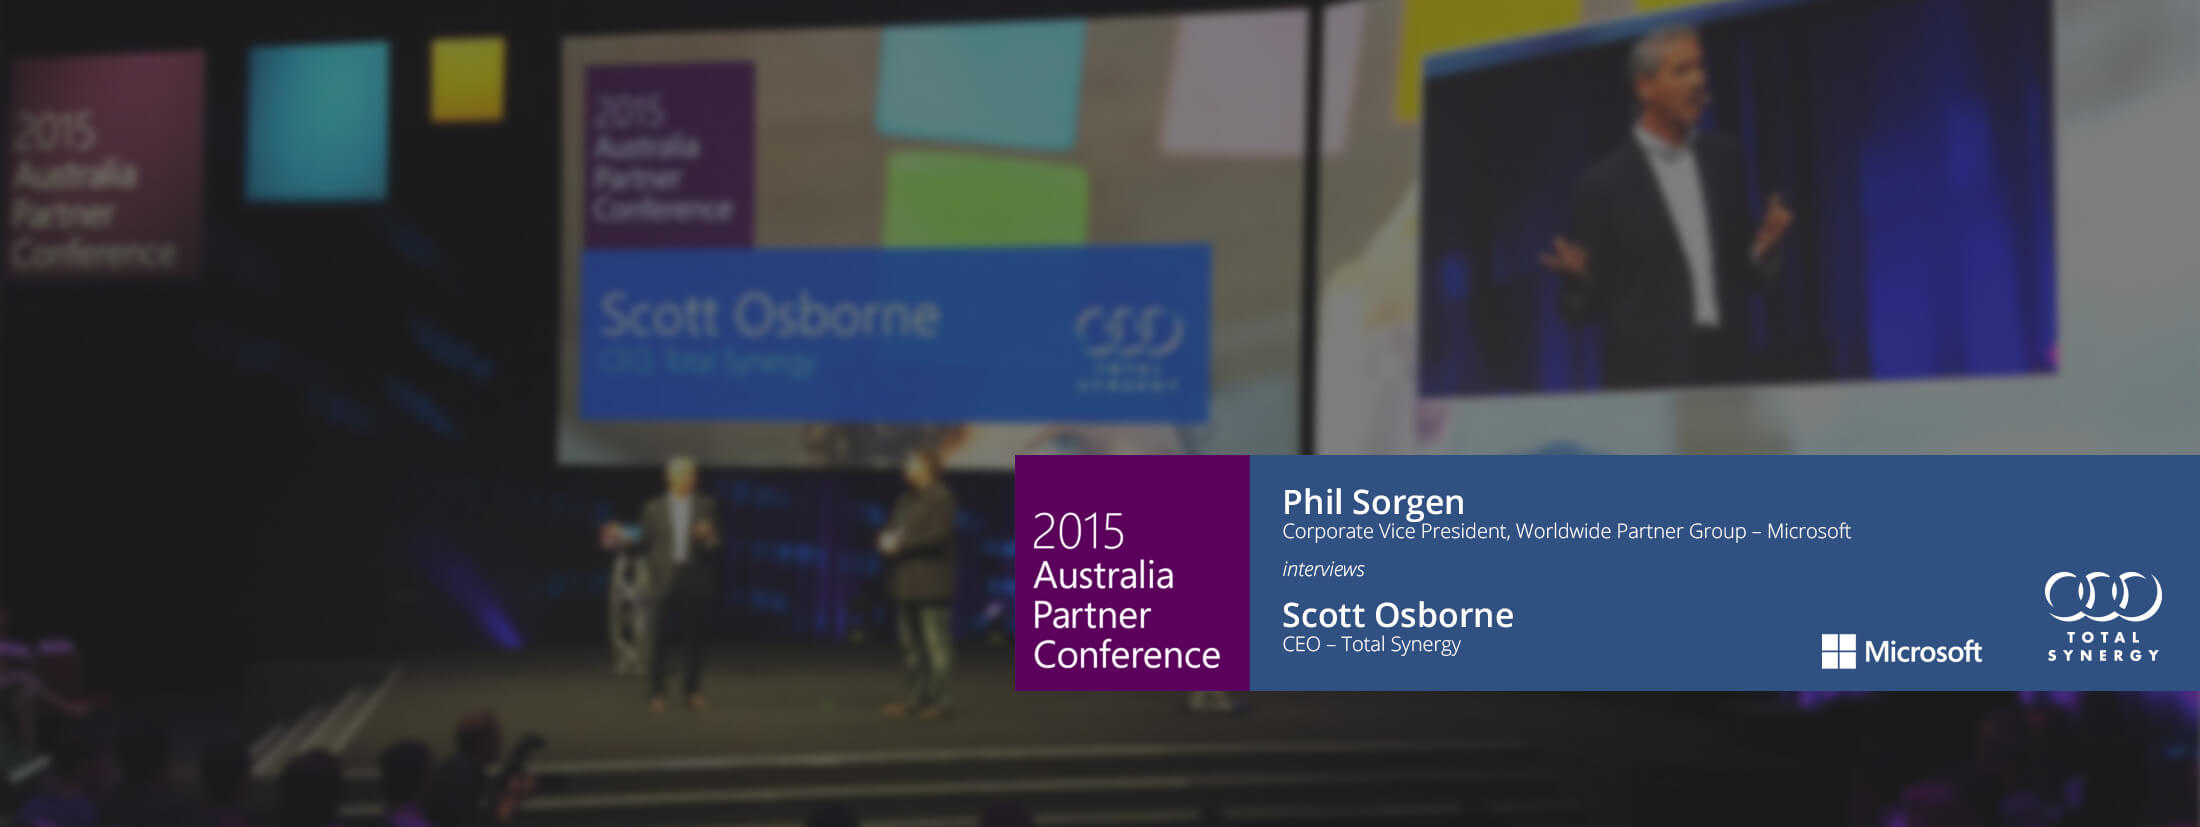 Microsoft interviews Total Synergy CEO Scott Osborne about the success the company has experienced from its shift to digital marketing.